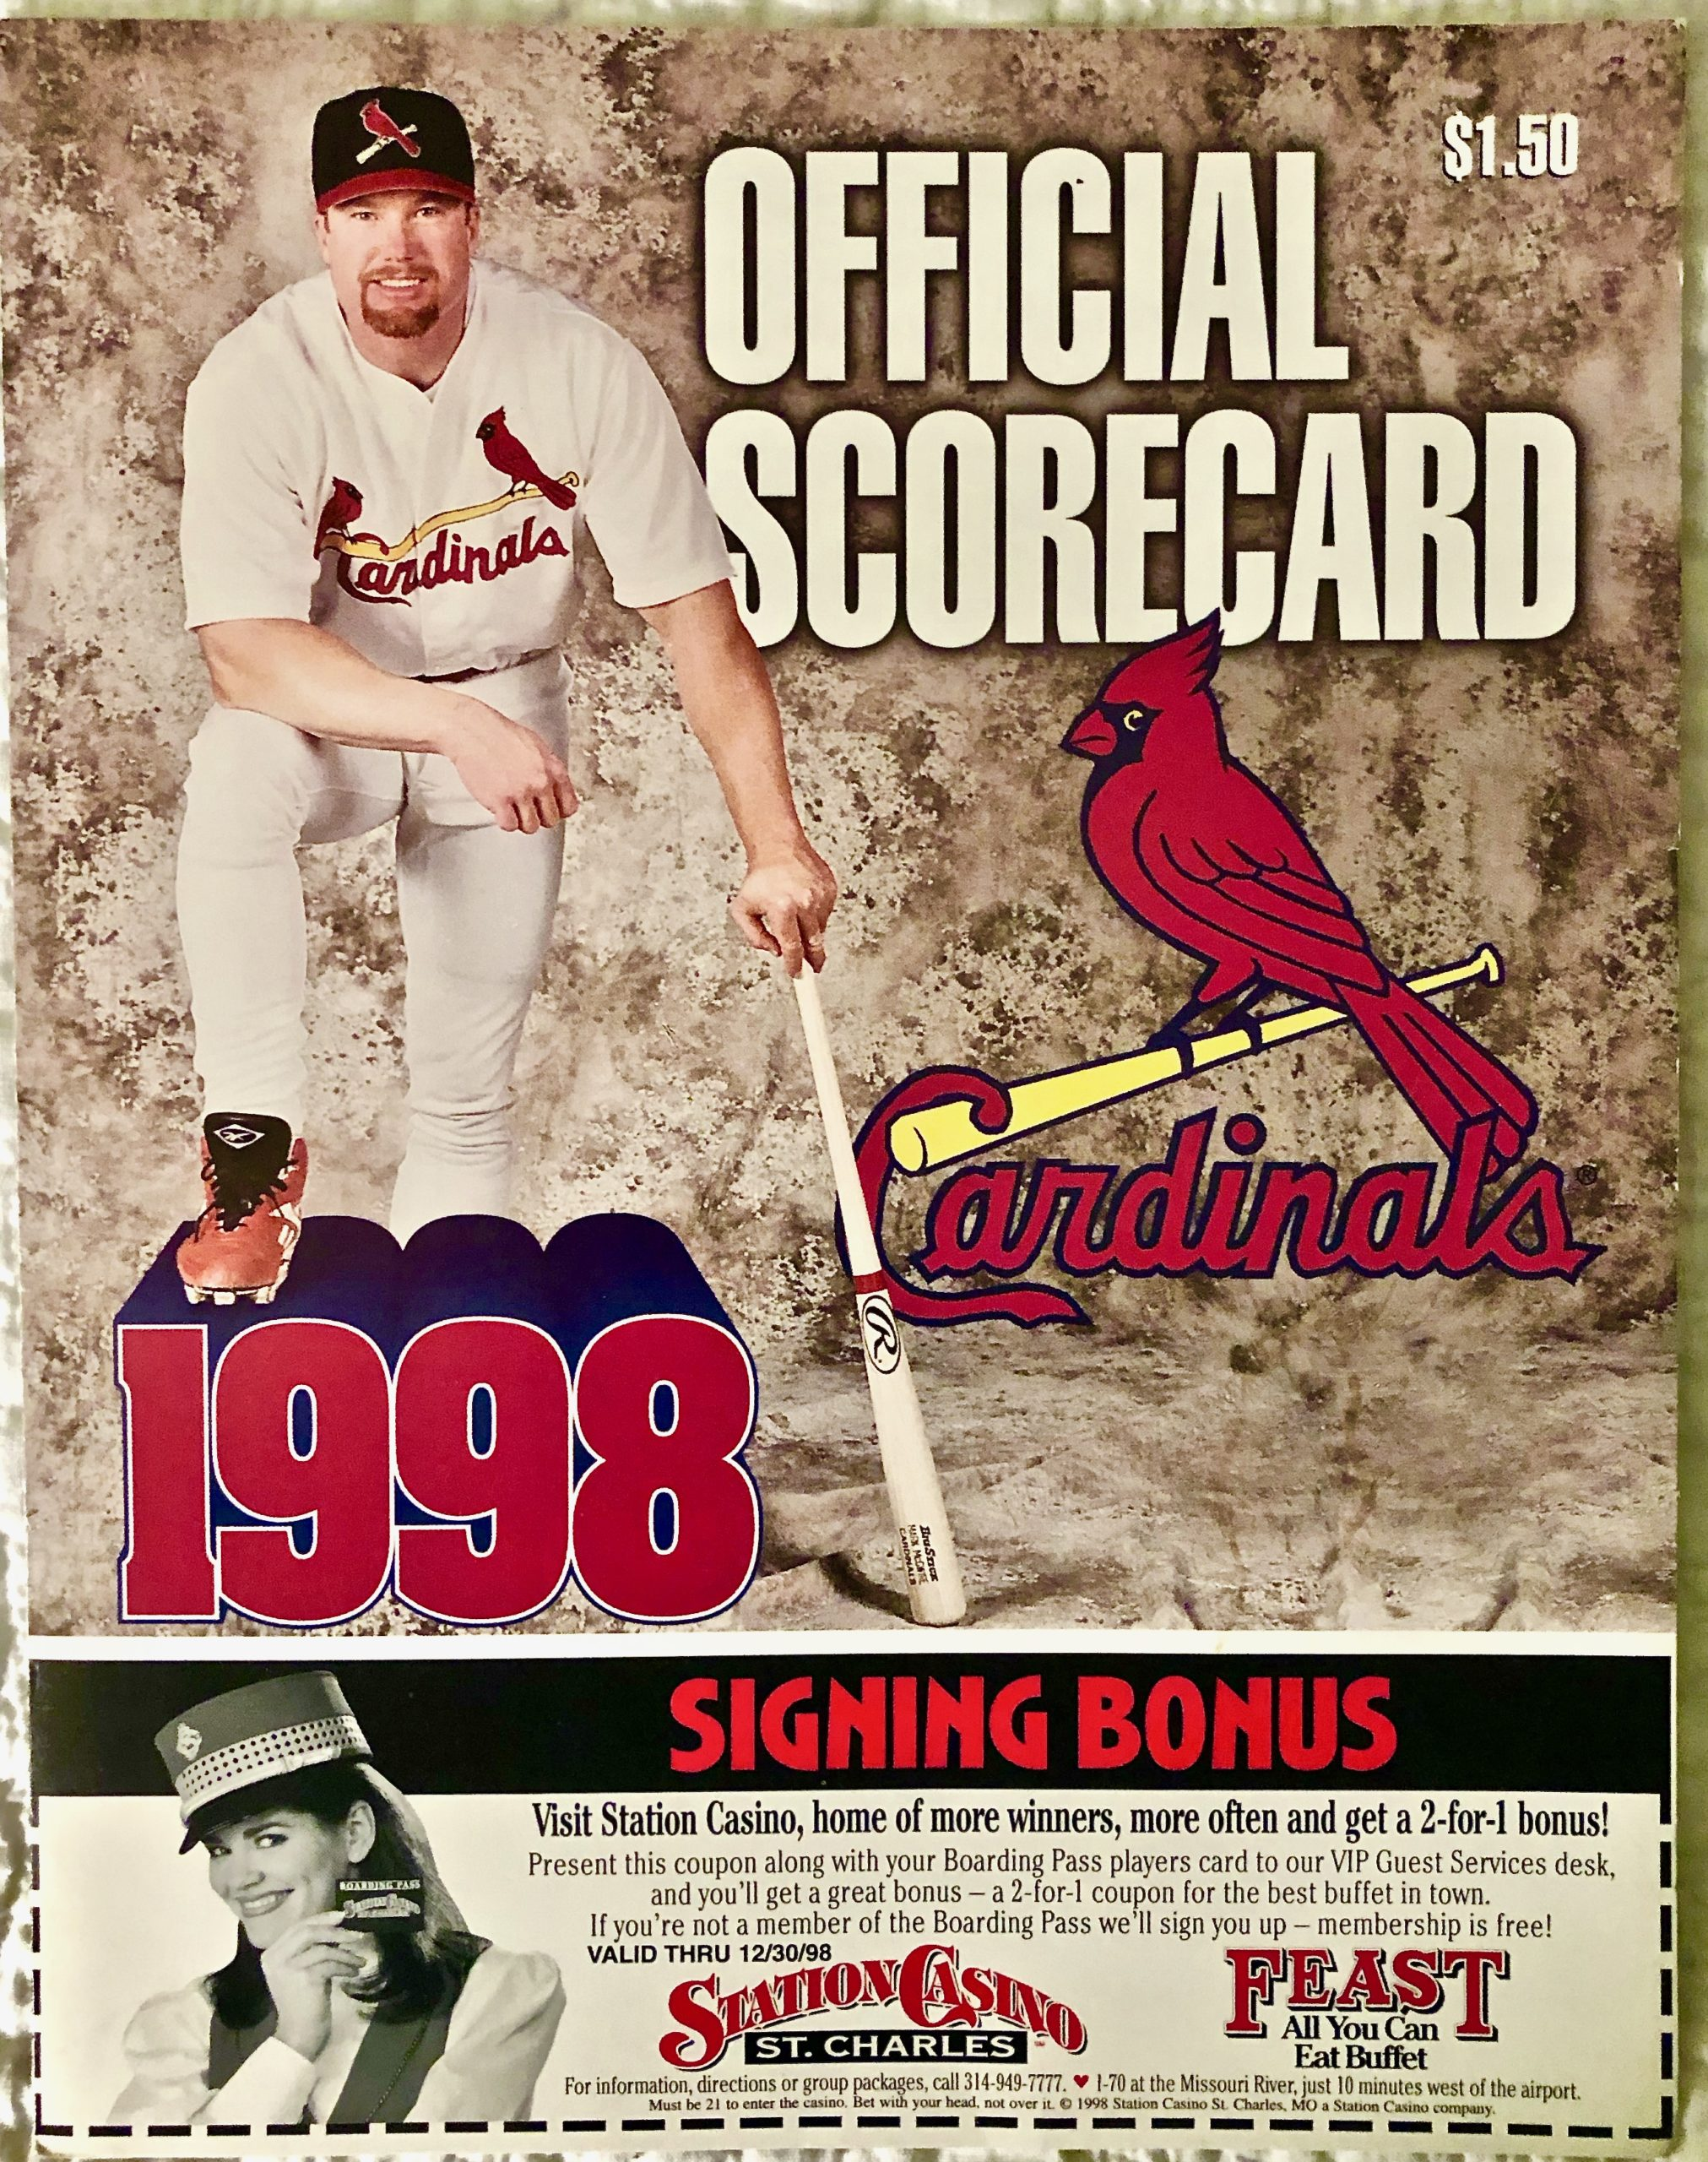 Item SM 20 - 1998 Cardinals Scorecard -- 21 Years - The Day Mark McGuire Broke the Record